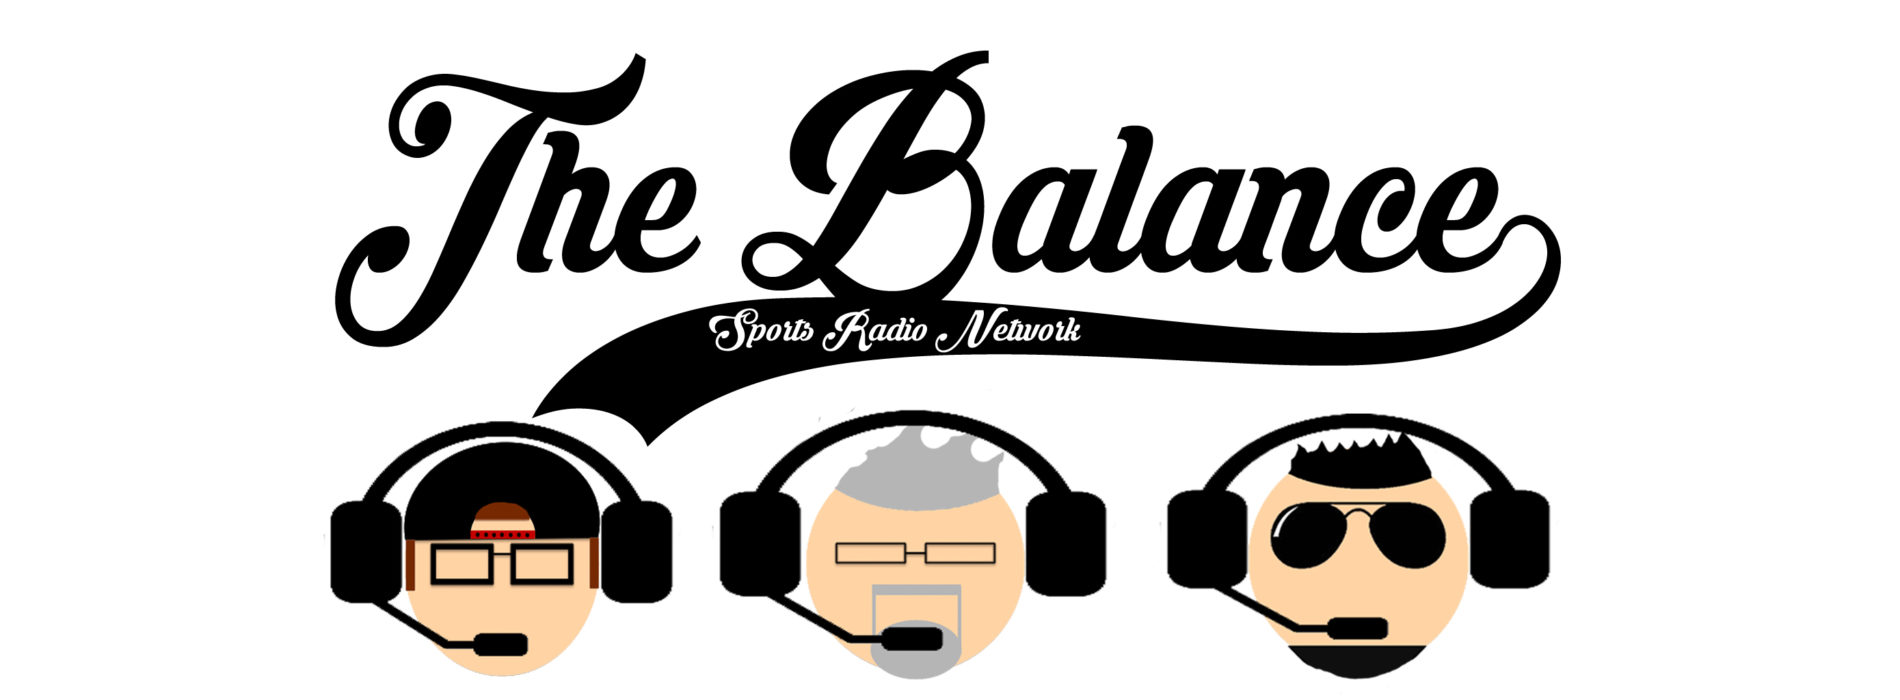 The Balance – January 2nd, 2016